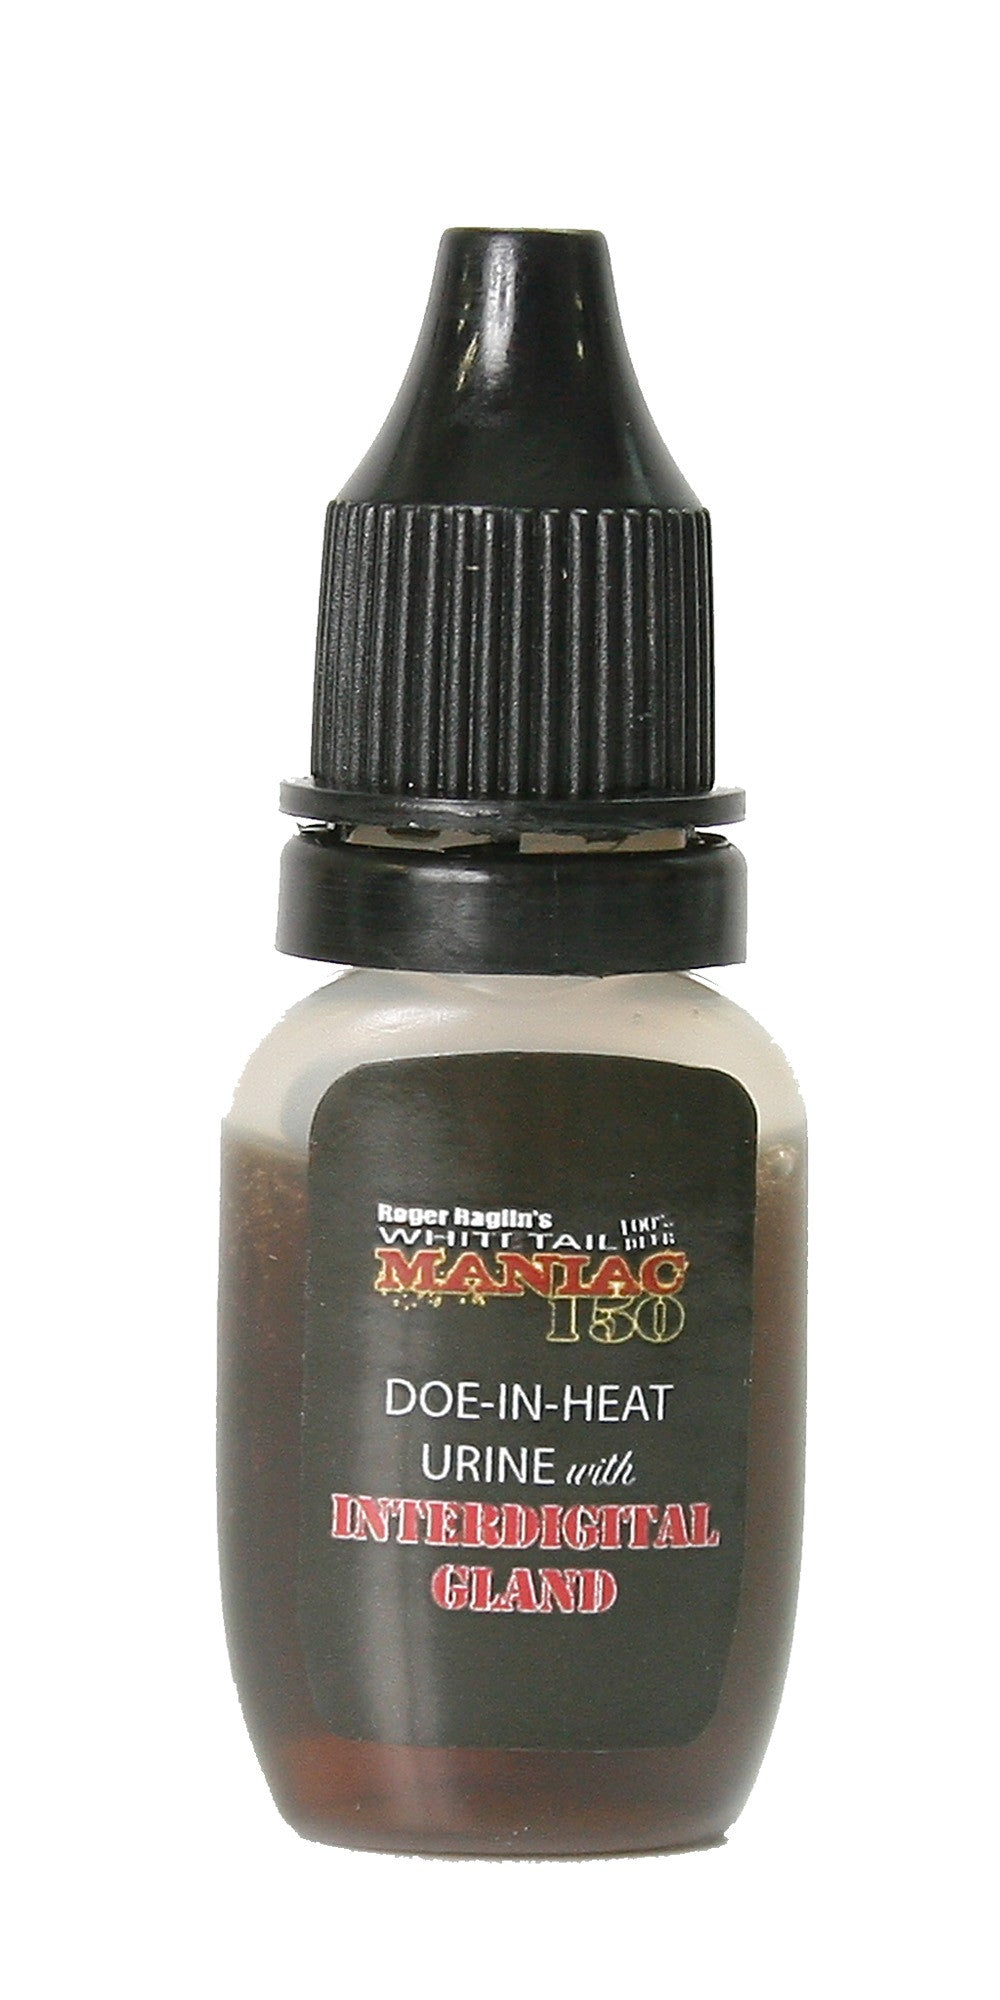 Maniac 150 Scent for WYNDSCENT Vapor Unit